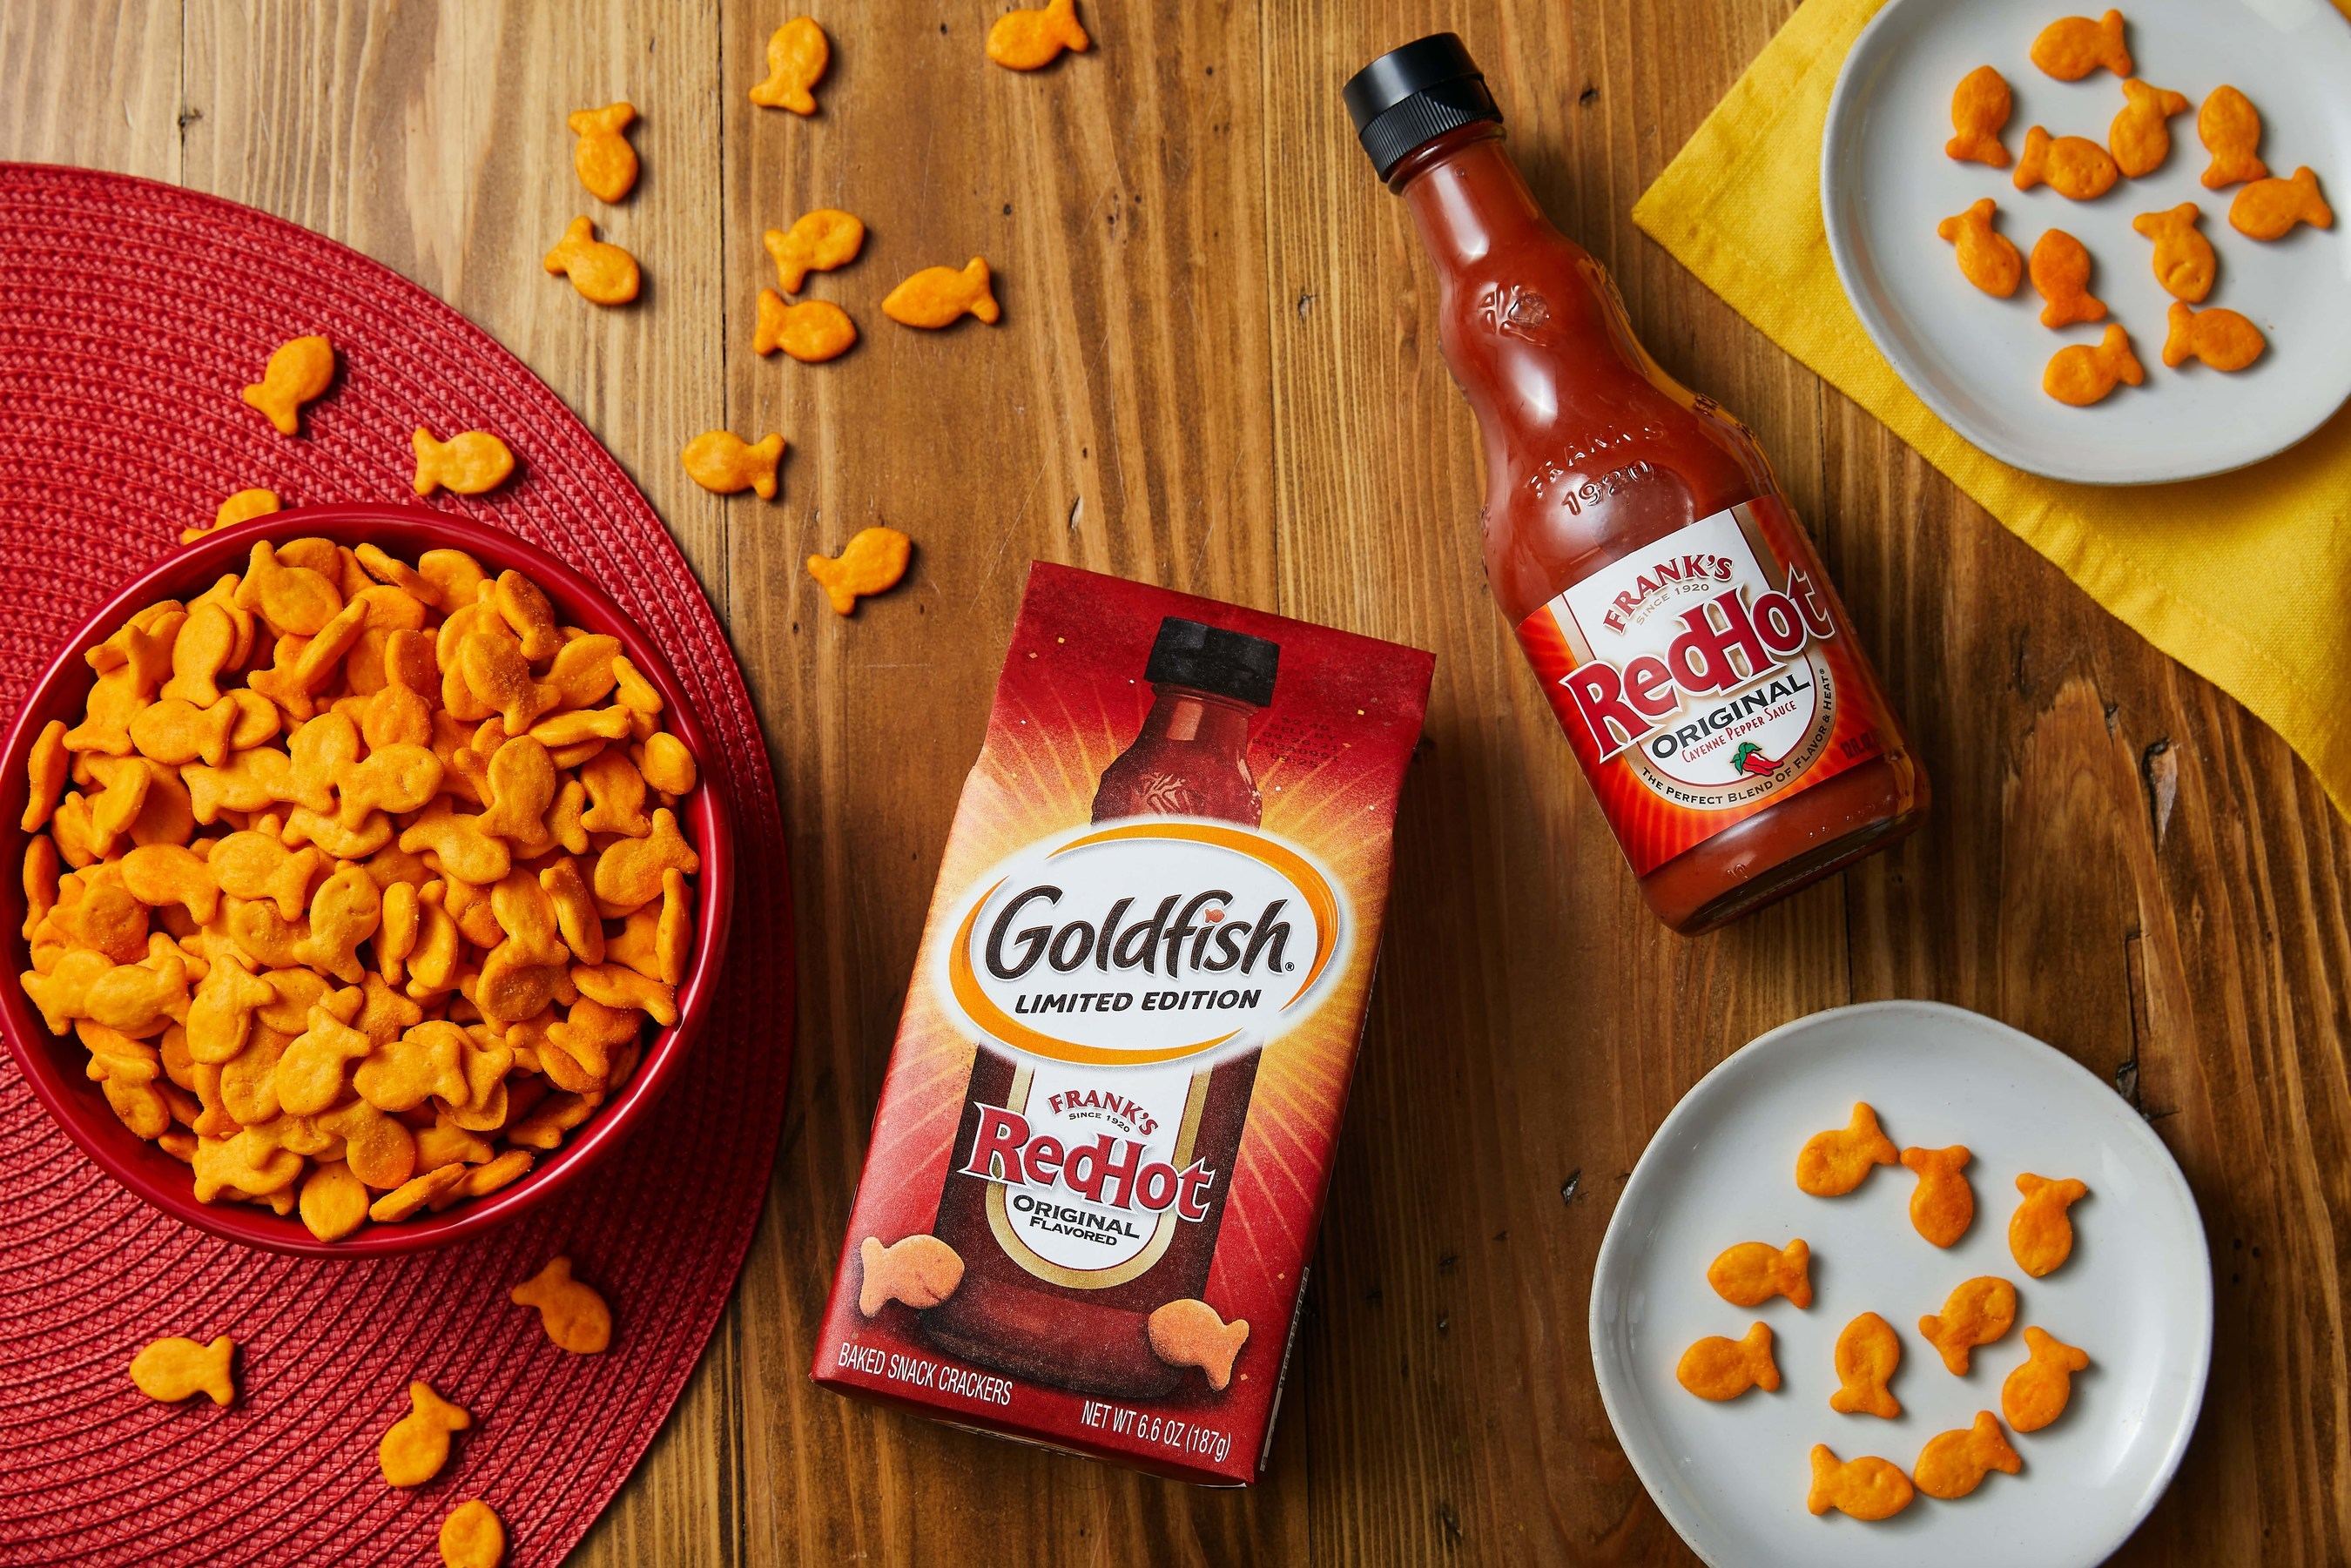 A top-down photo of Goldfish crackers in a bowl, a package of Goldfish, and a bottle of Frank's RedHot sauce.